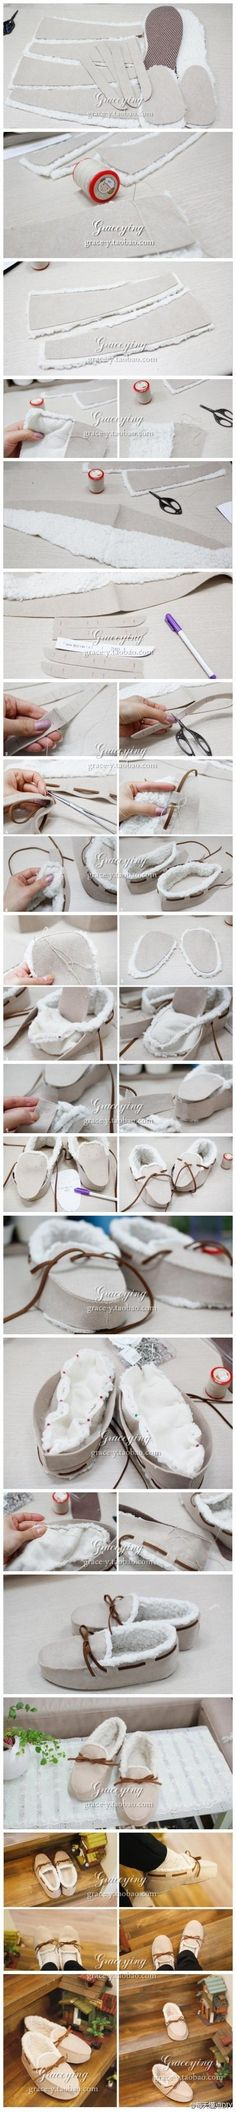 DIY Fuzzy Mocs by duitang #Slippers #Moccasins #duitang by qaz357